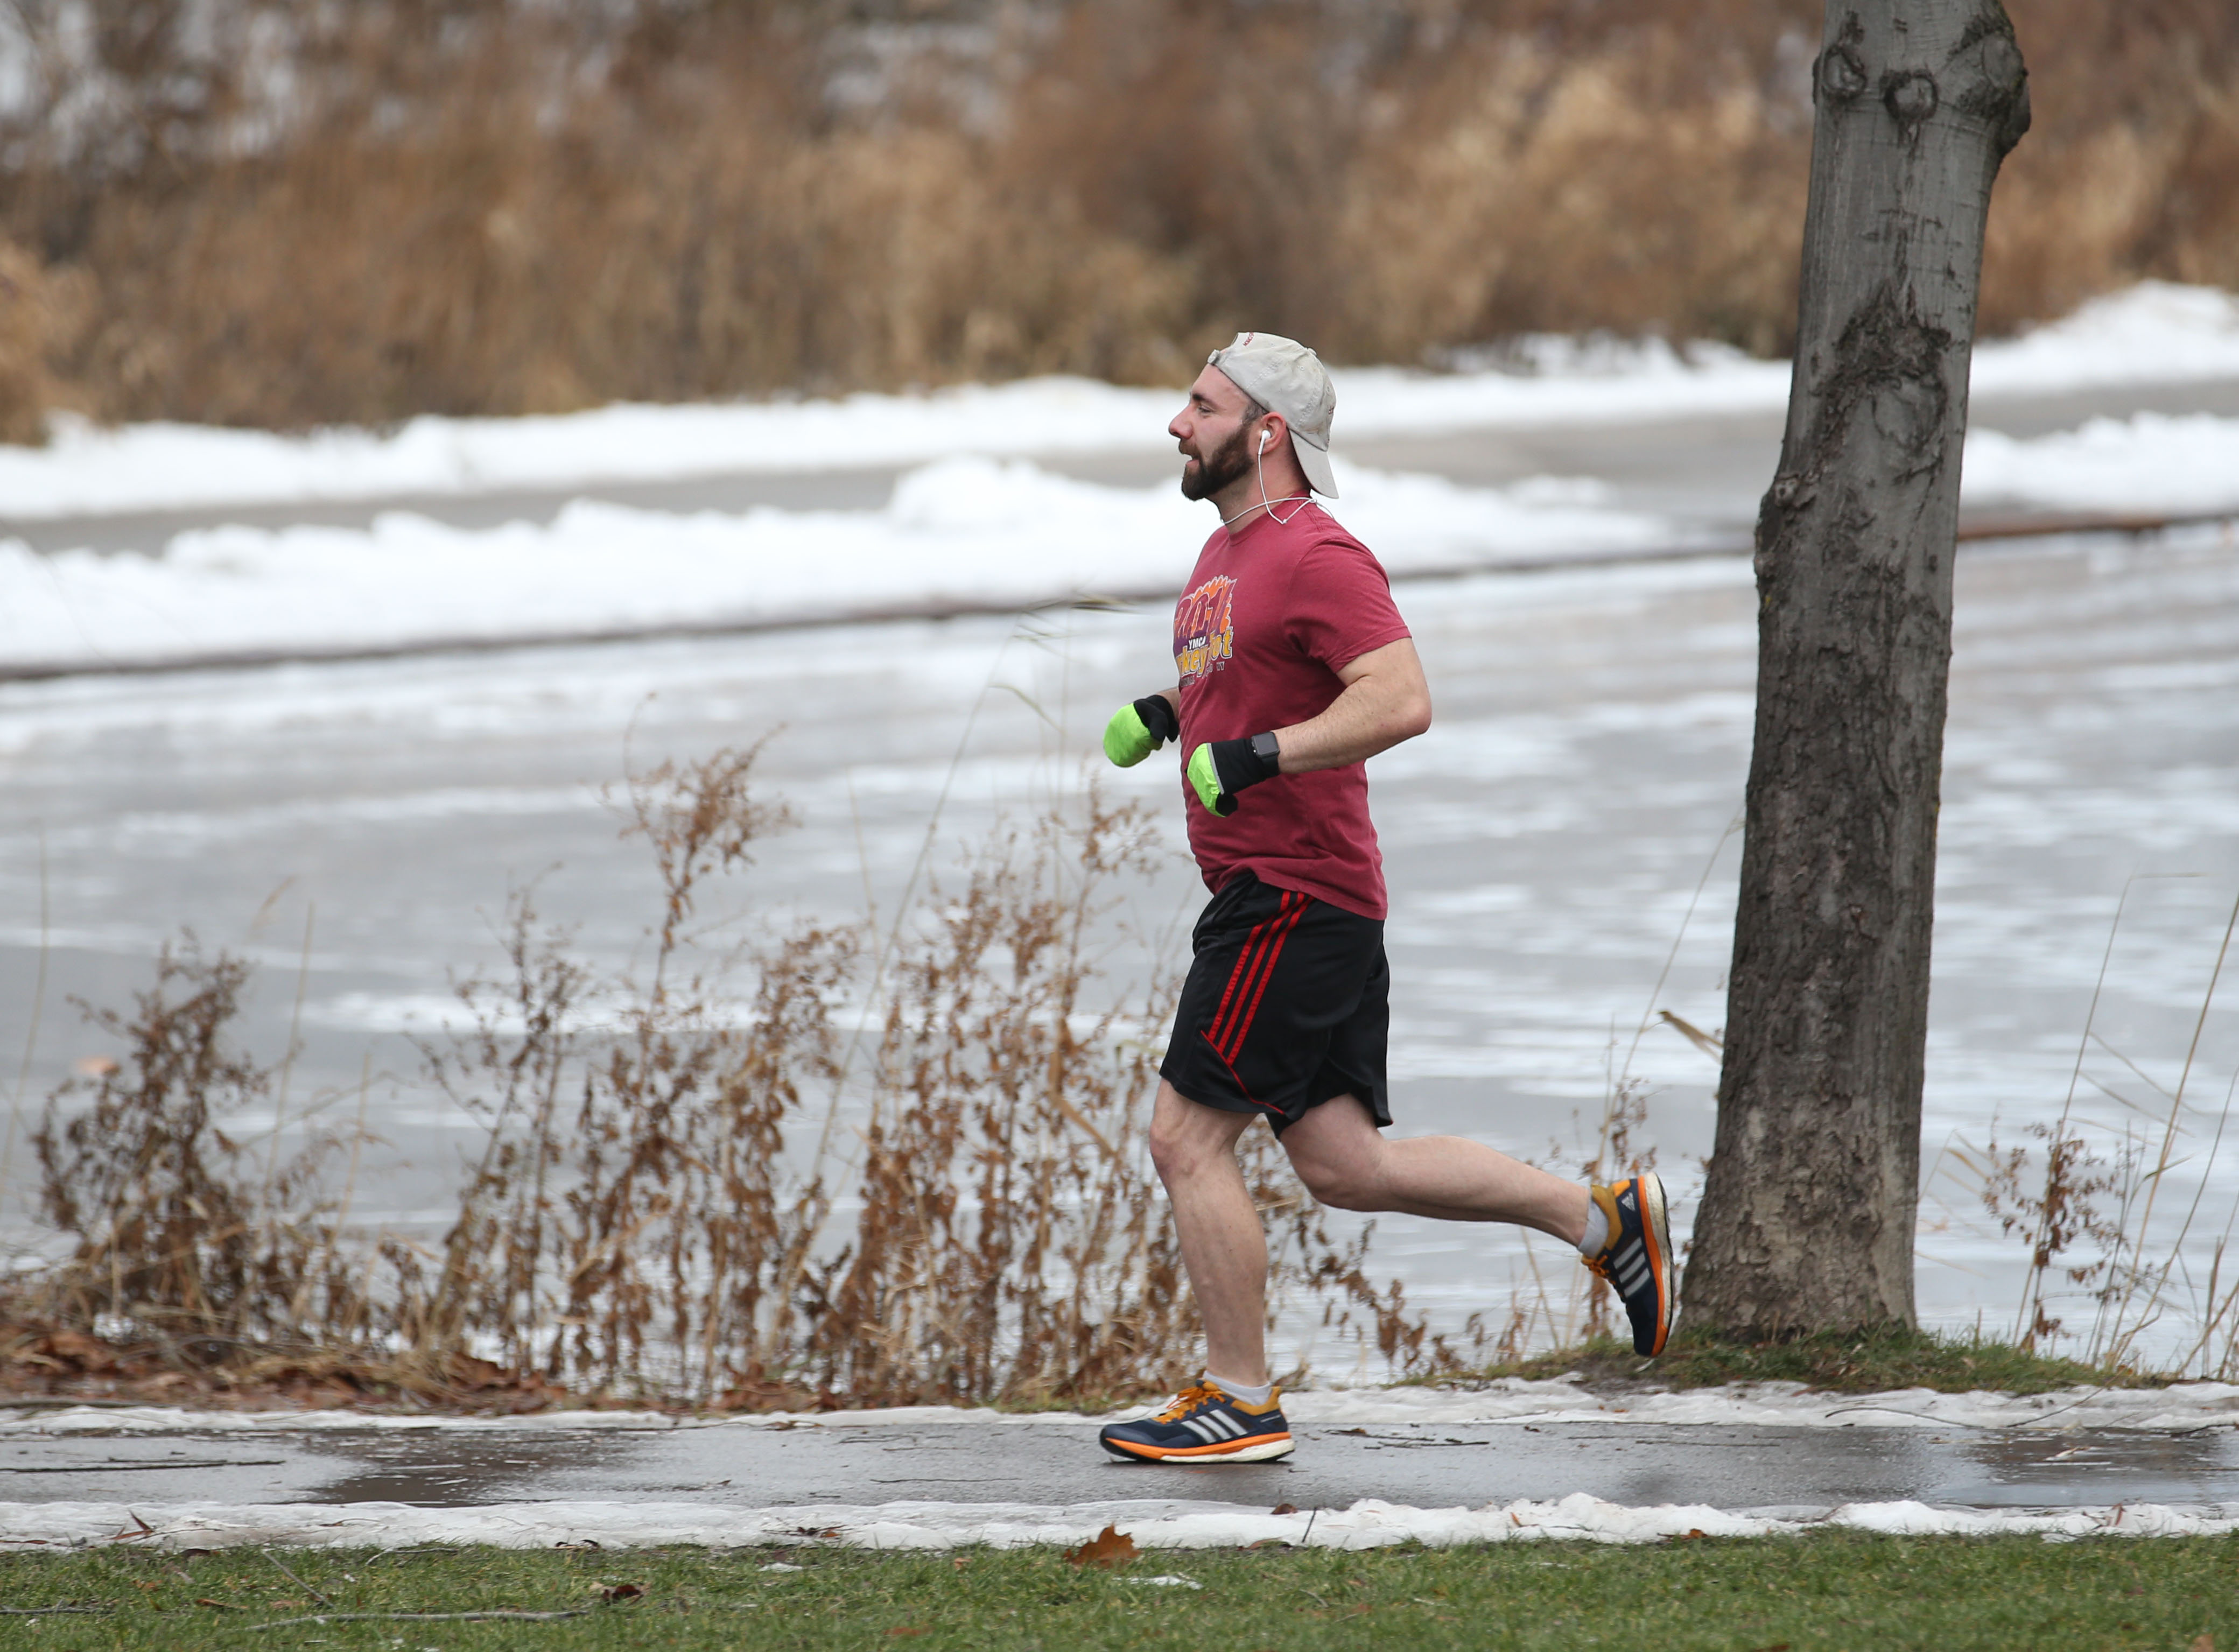 With a high of 55 degrees, Joshua Sanders runs around Hoyt Lake in Delaware Park in shorts and a T-shirt on Monday, Dec. 26, 2016. (Sharon Cantillon/Buffalo News)